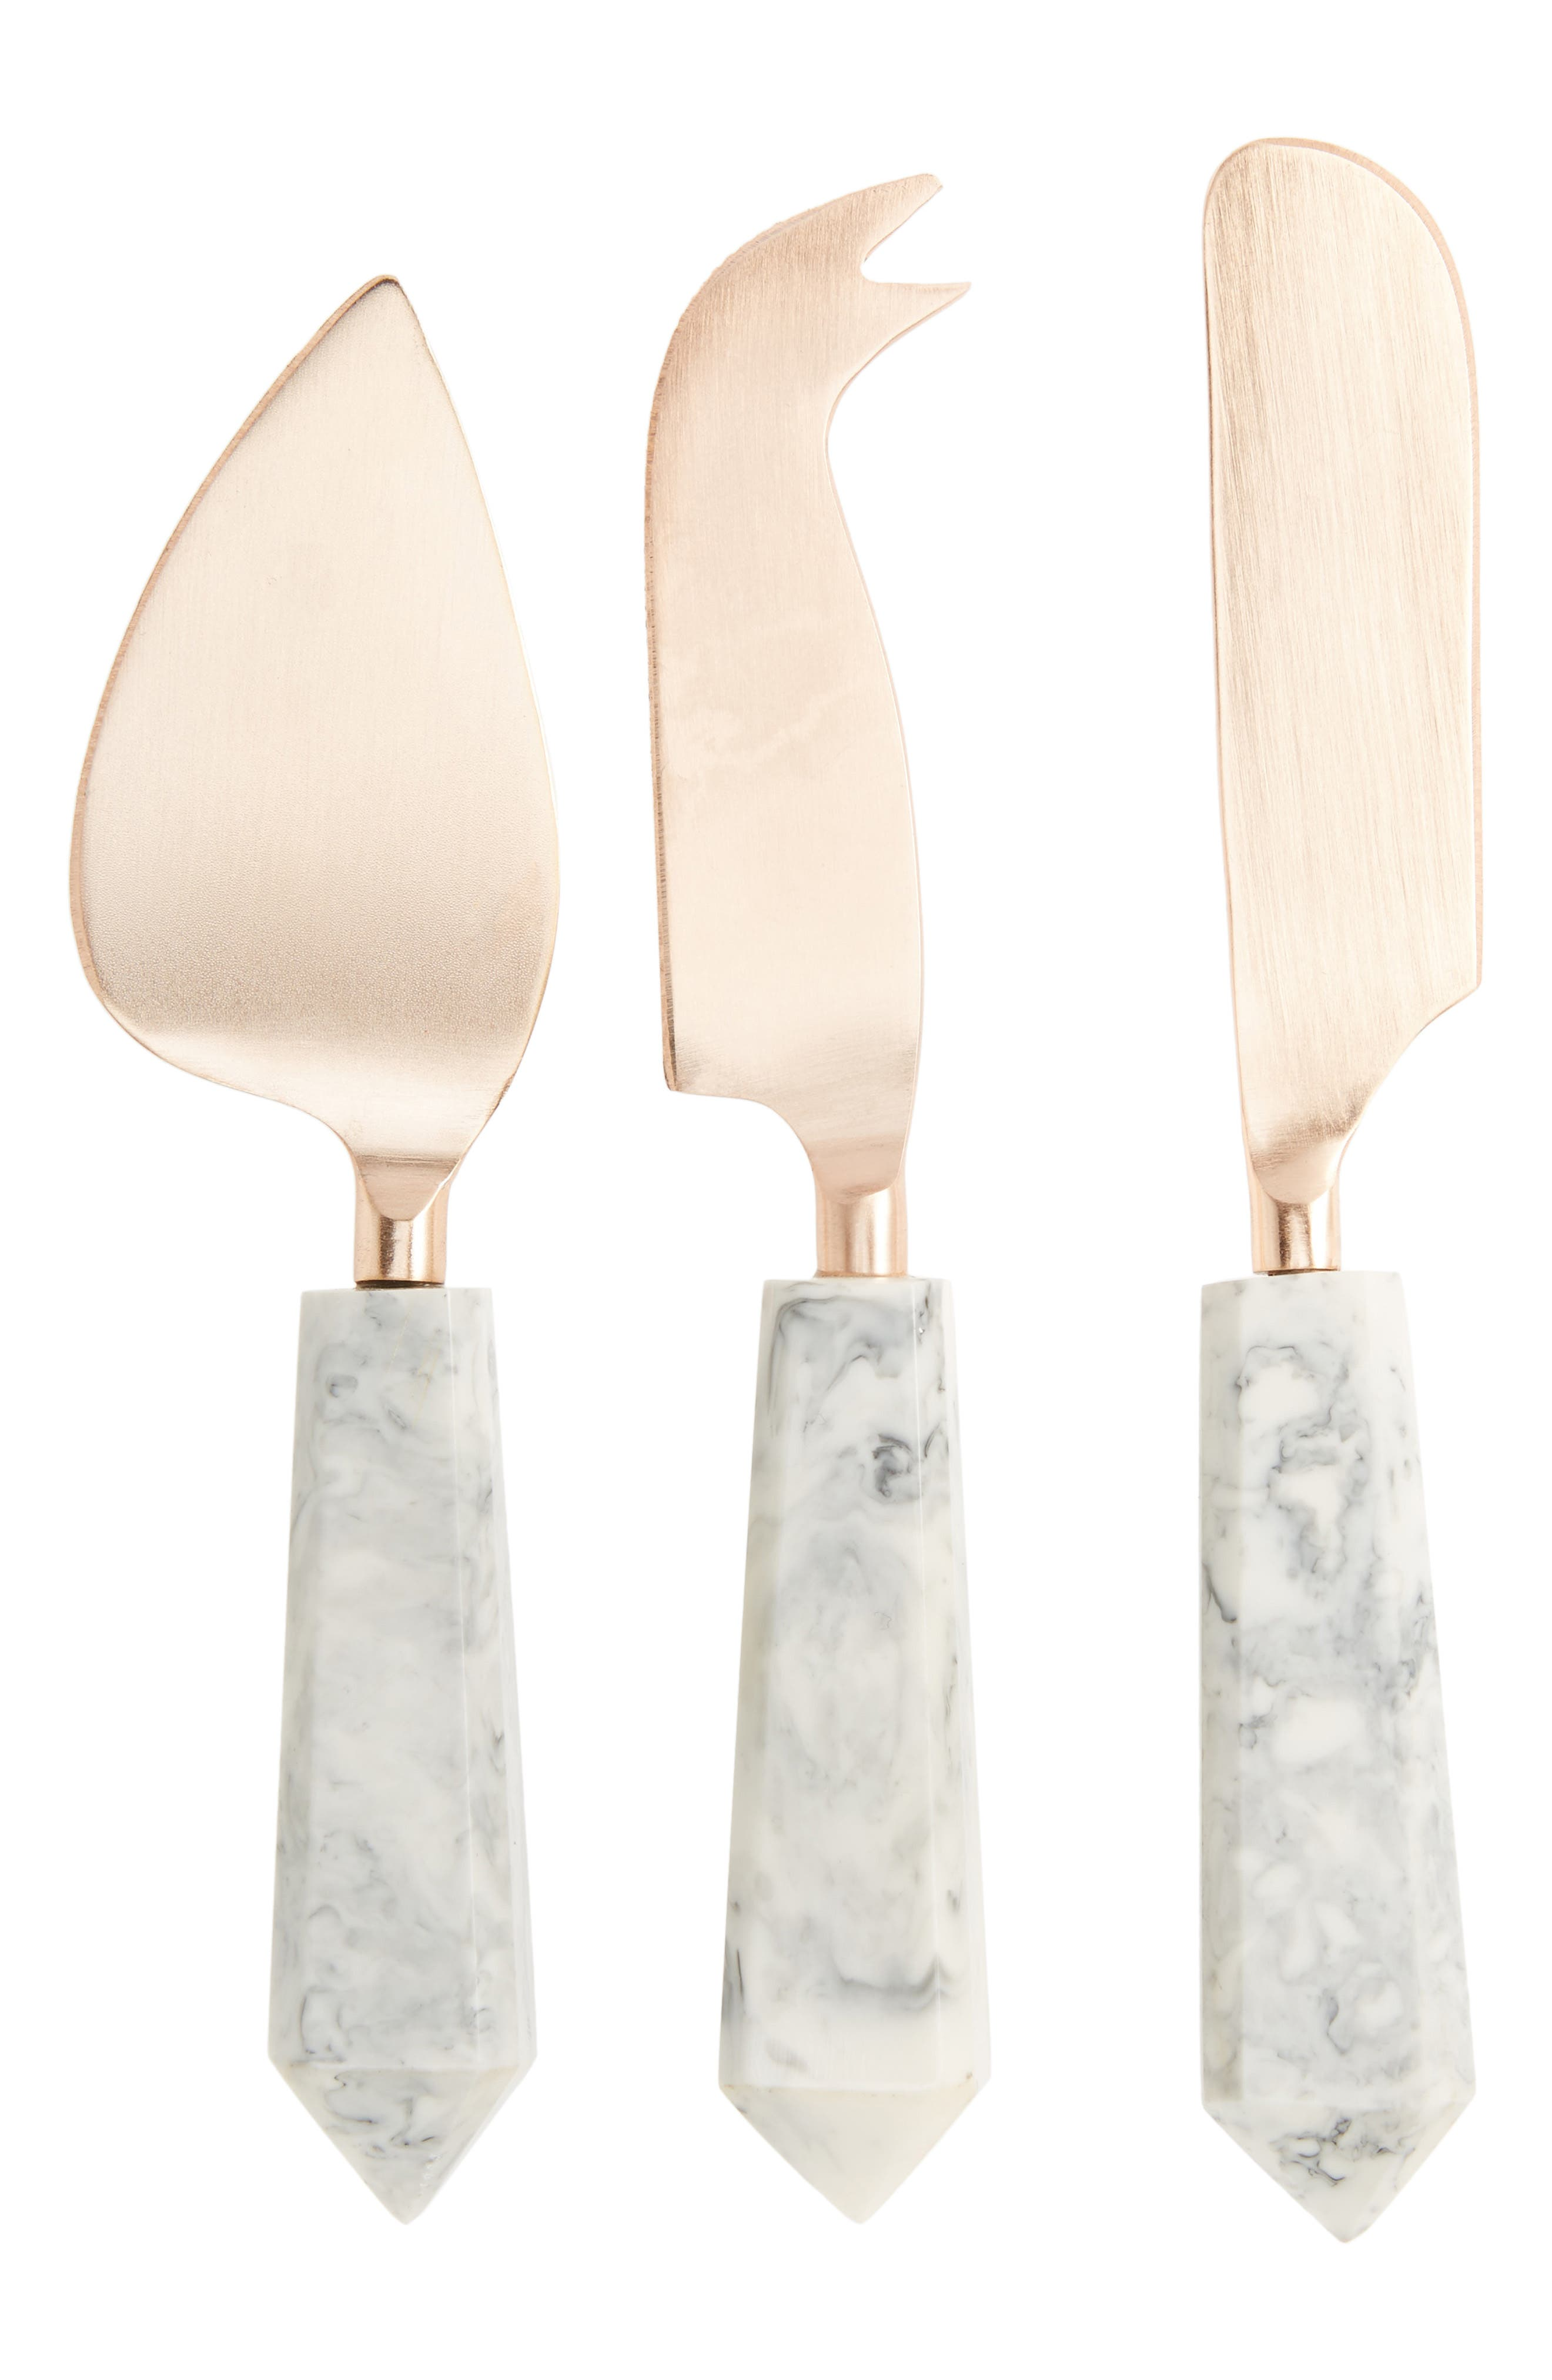 Nordstrom at Home Set of 3 Cheese Knives